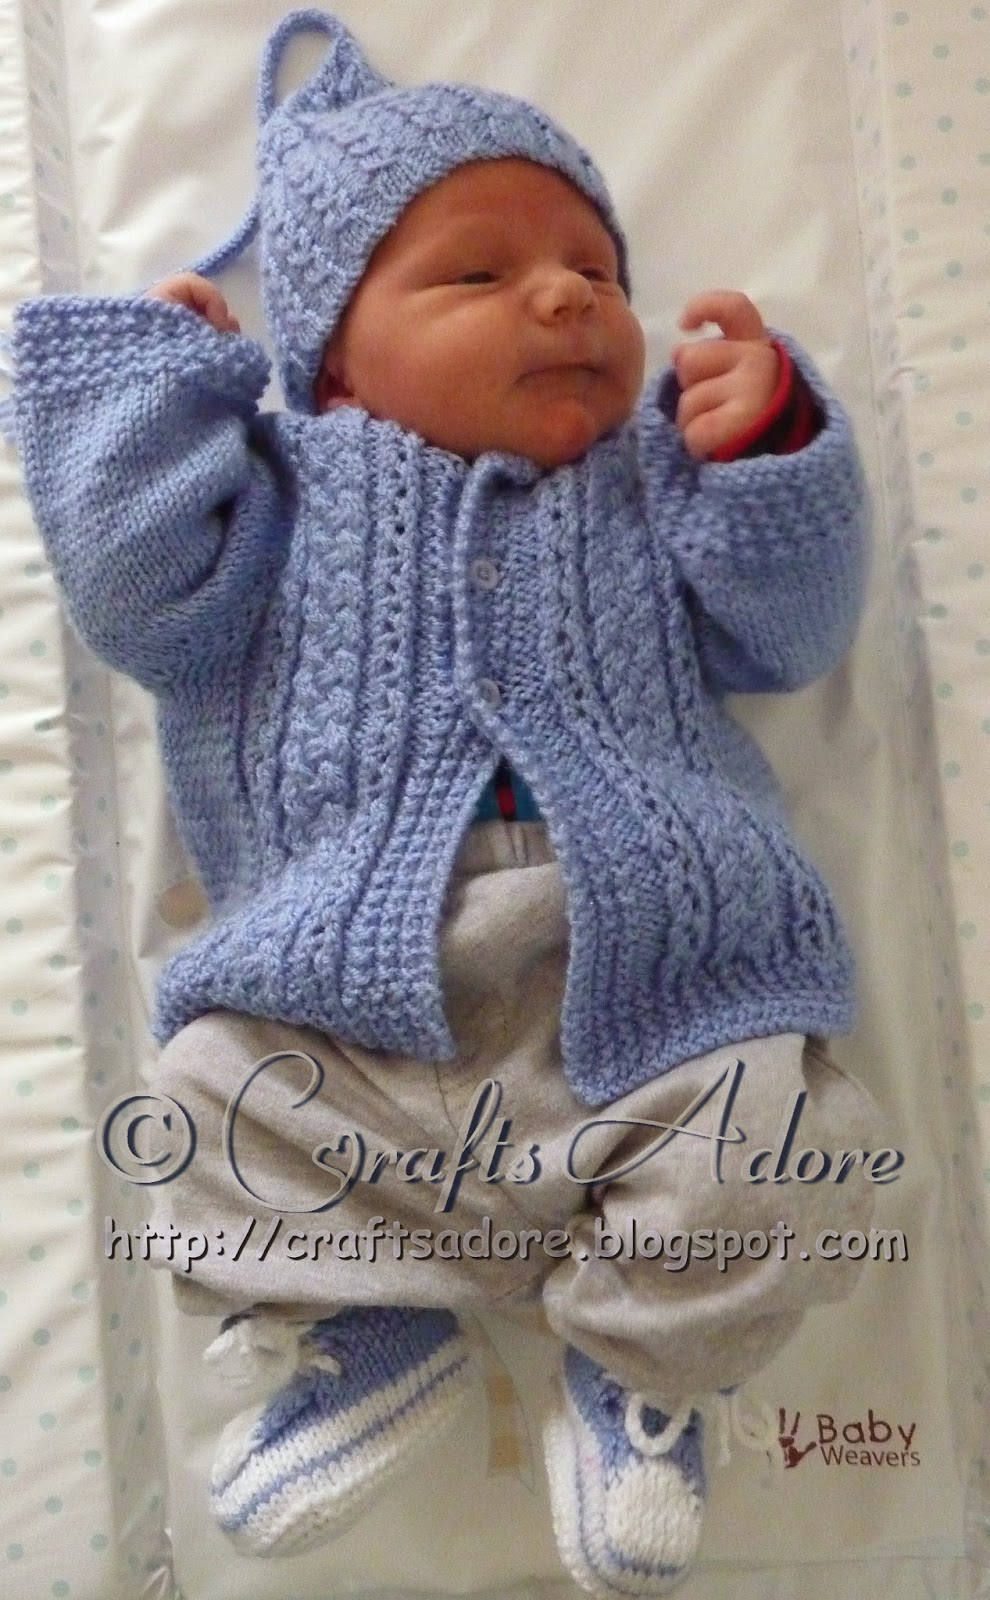 Free Download Baby Knitting Patterns : CraftsAdore: